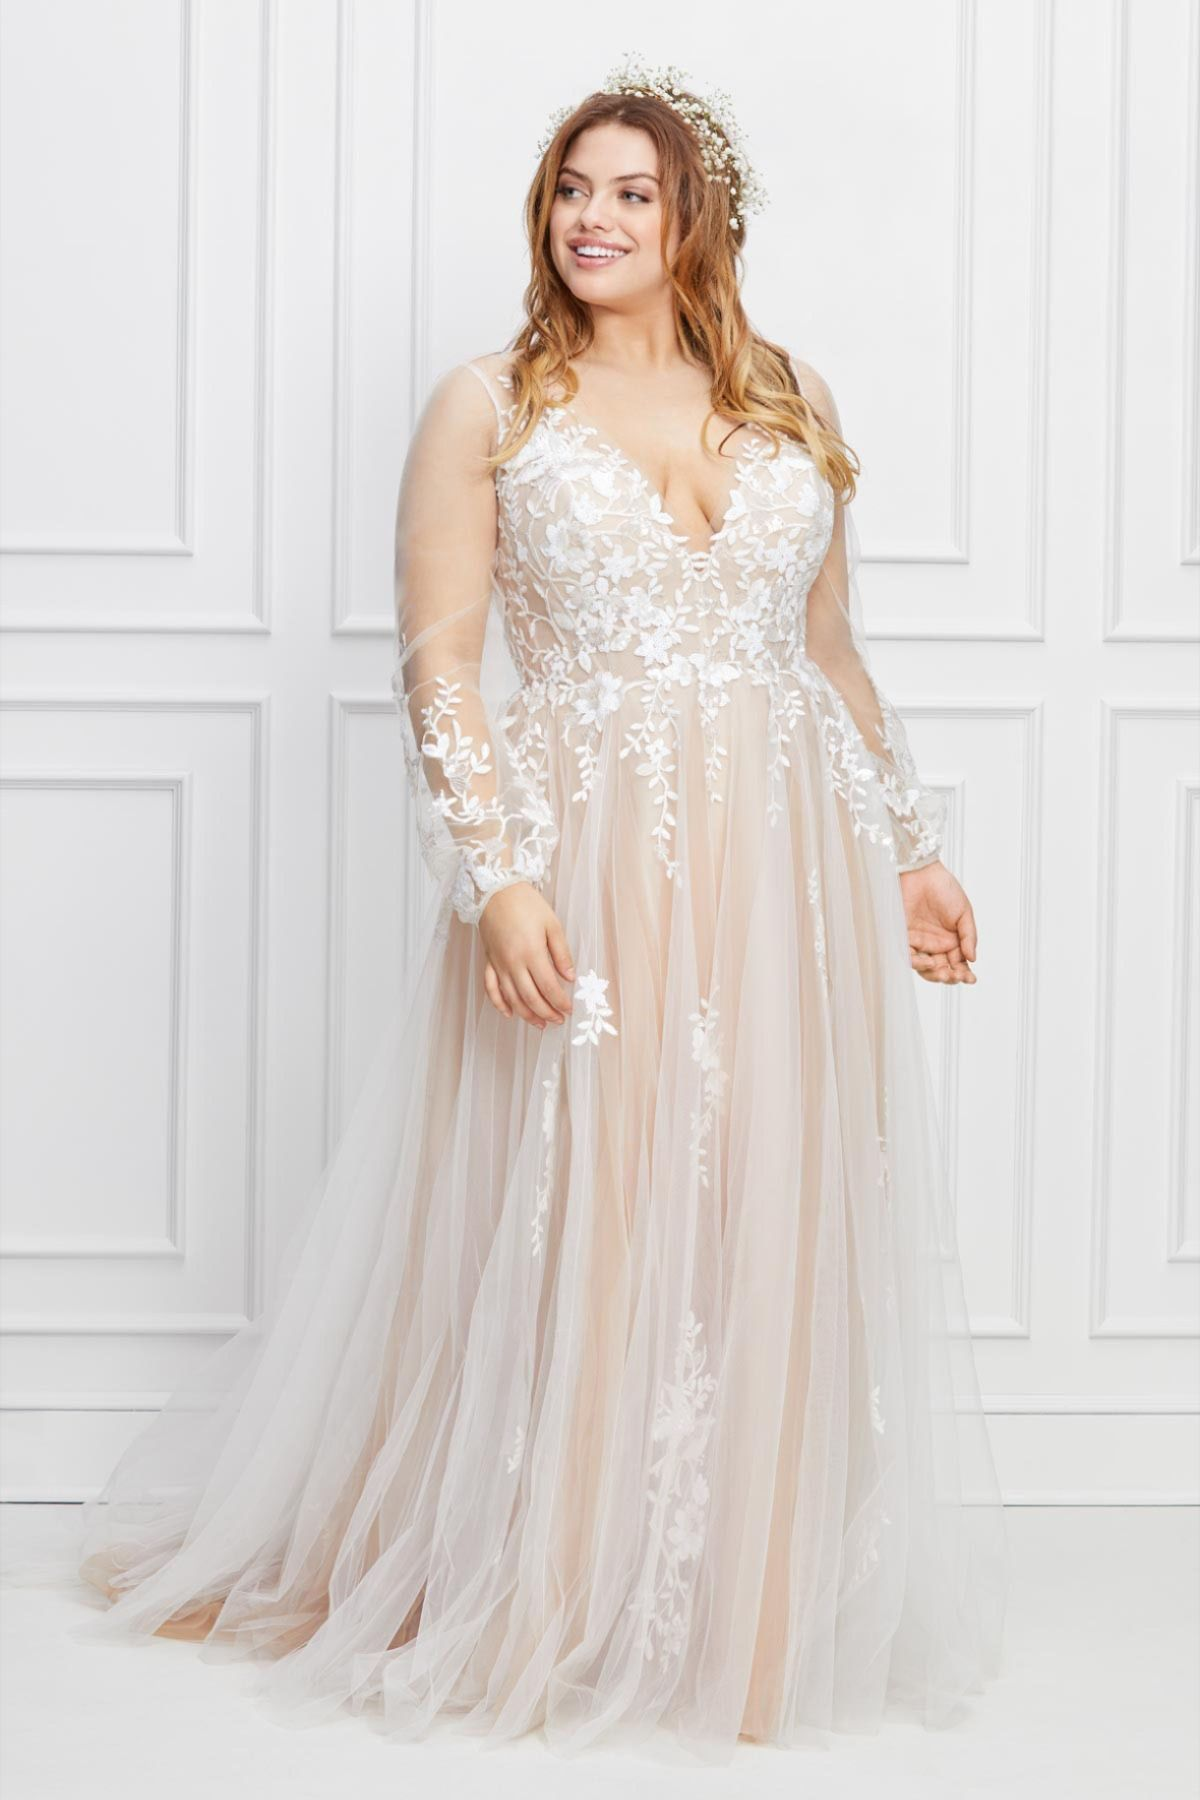 Willowby Saros Sleeved Wedding Gown Plus Wedding Dresses Evening Dresses For Weddings Plus Size Wedding Gowns [ 1800 x 1200 Pixel ]